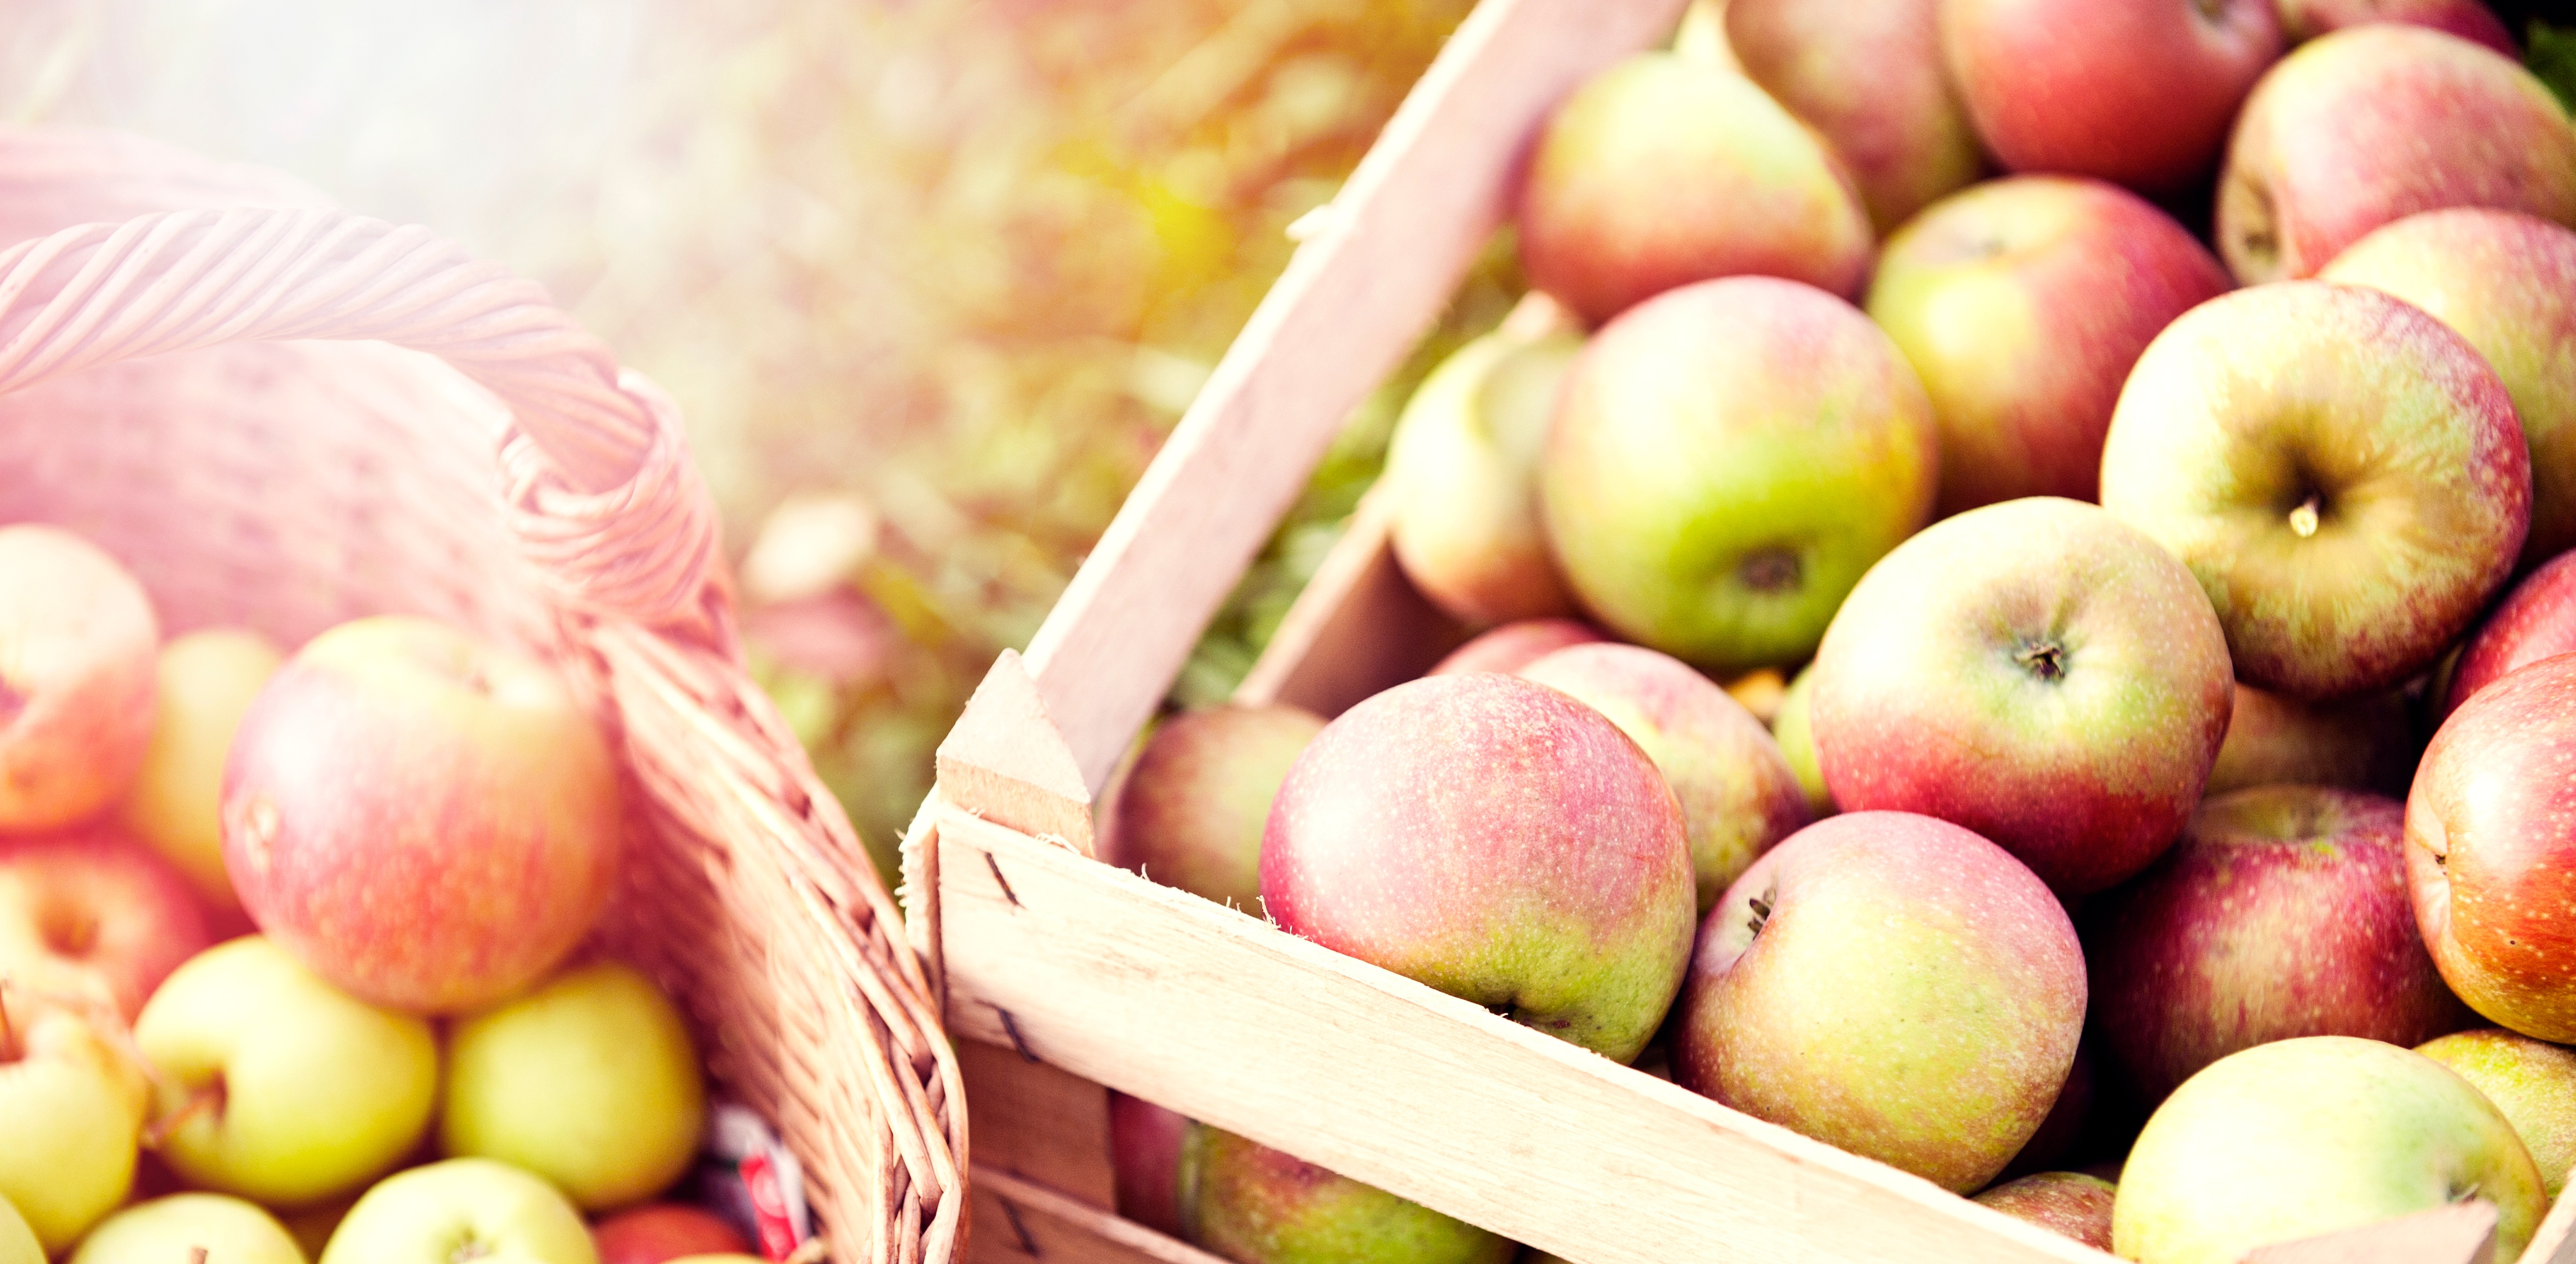 Apples-in-a-wooden-box-508588838_4256x2088.jpeg